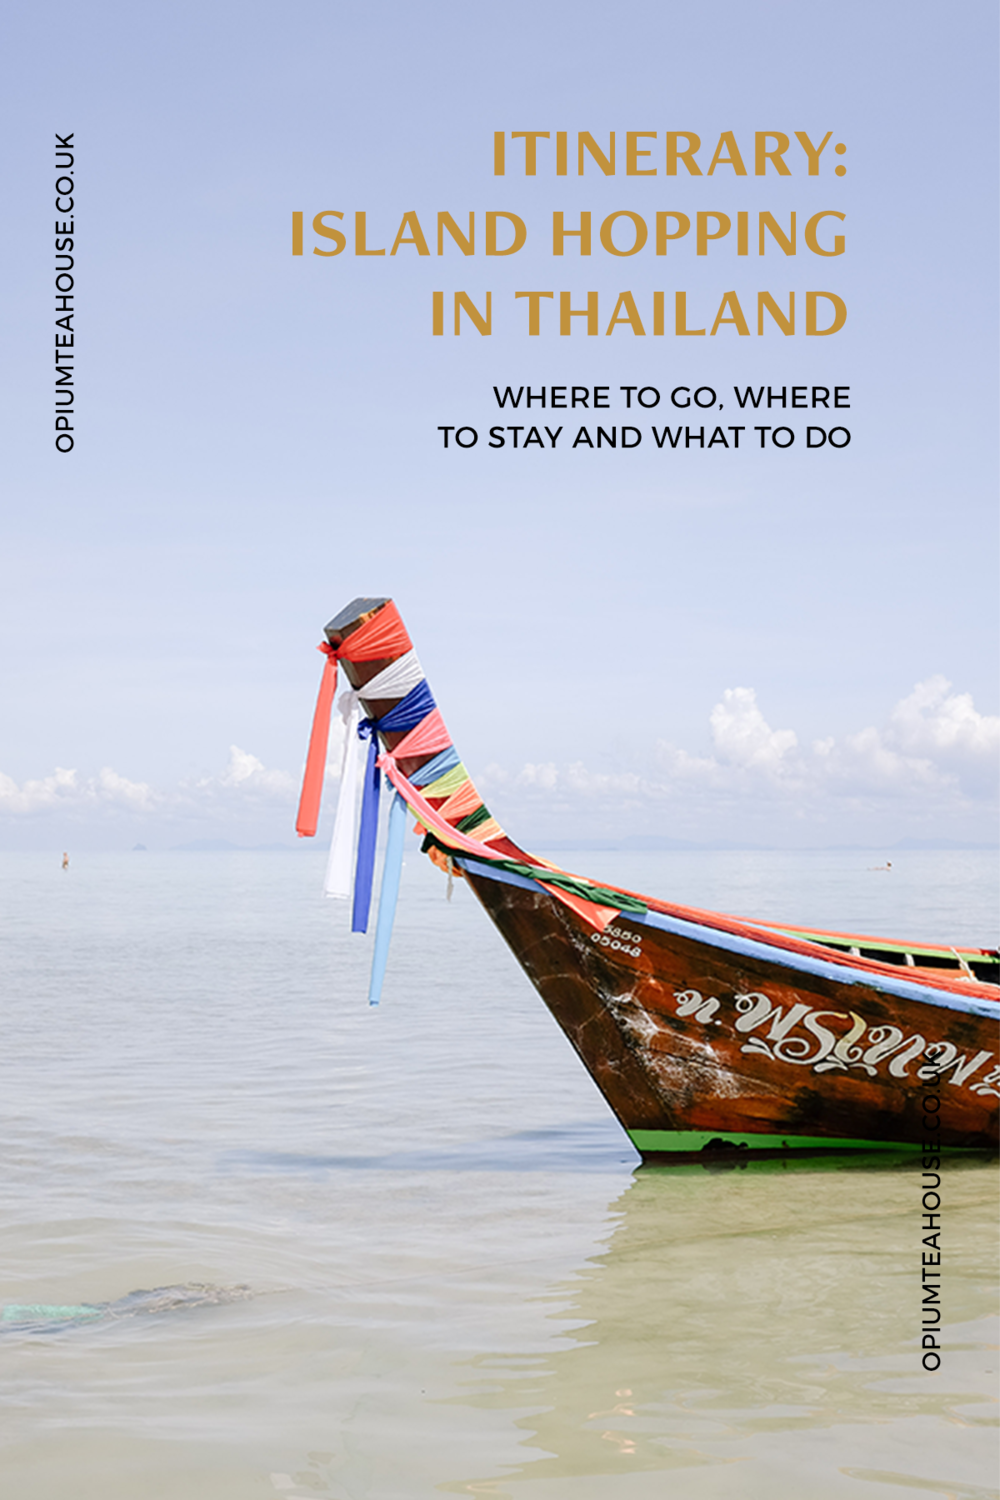 Thai Islands Itinerary — OTH